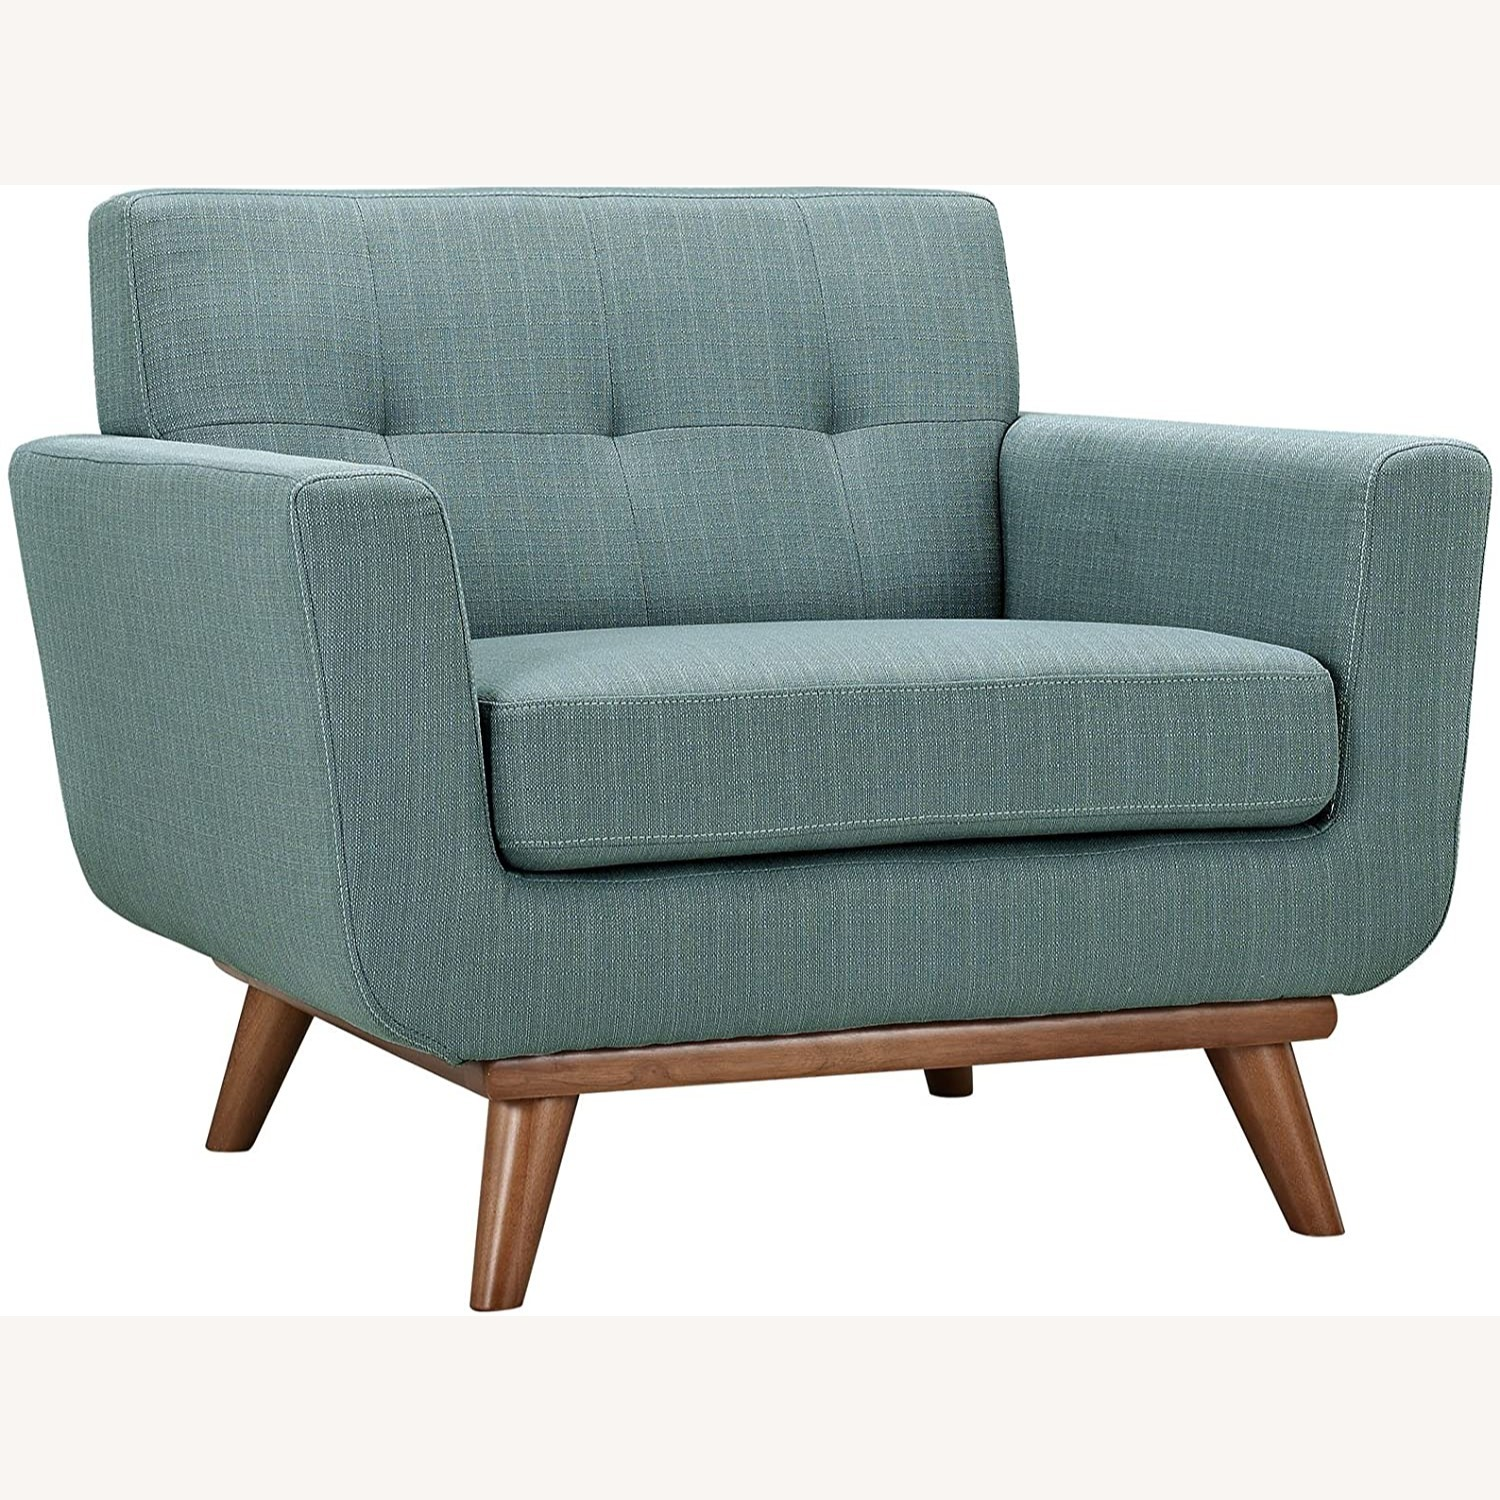 Armchair In Laguna Fabric W/ 3 Tufted Buttons - image-0